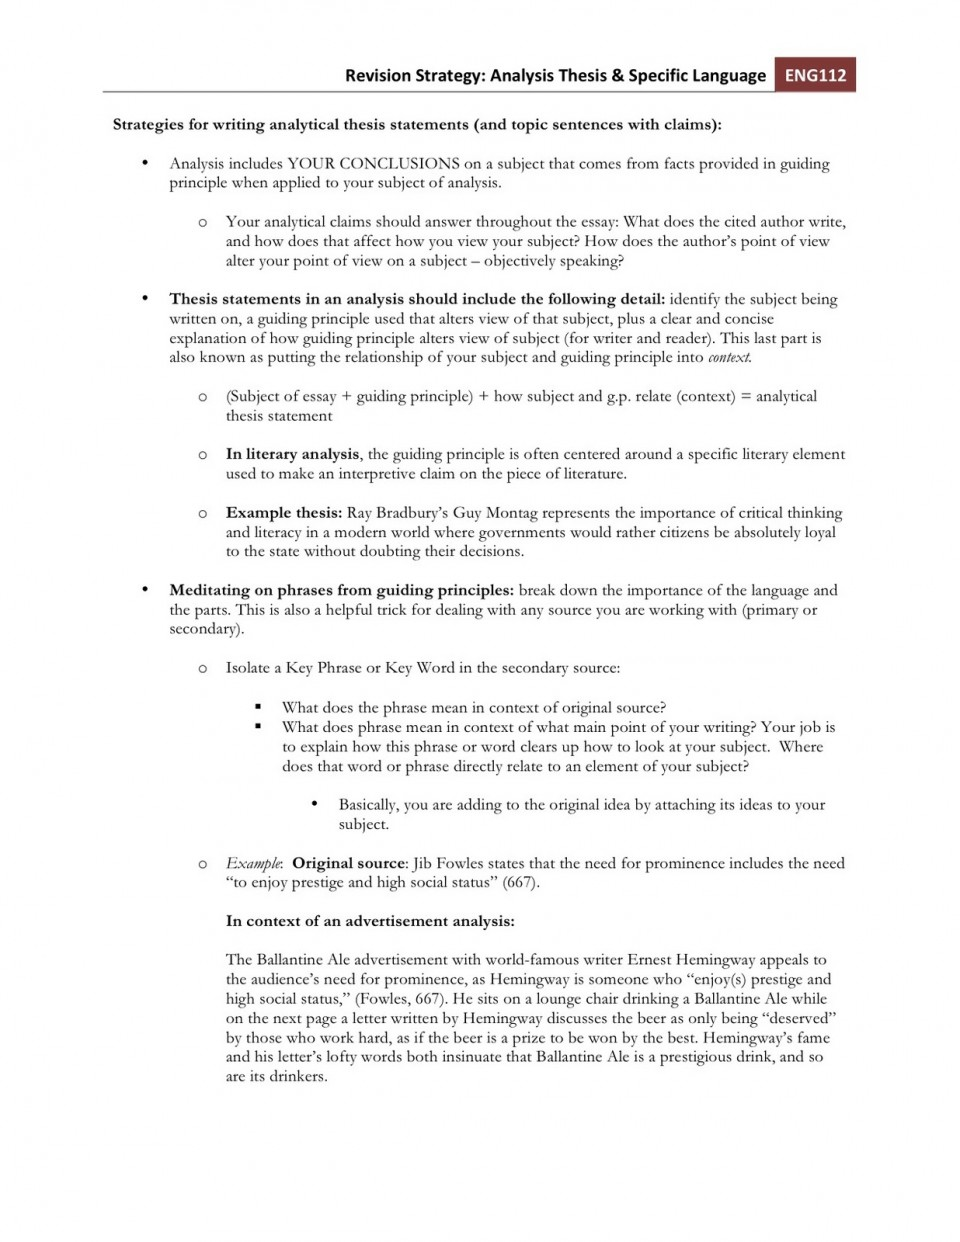 006 Strategiesforwritinganalyticalthesisstatements Essay Example Phenomenal Eslrs 960